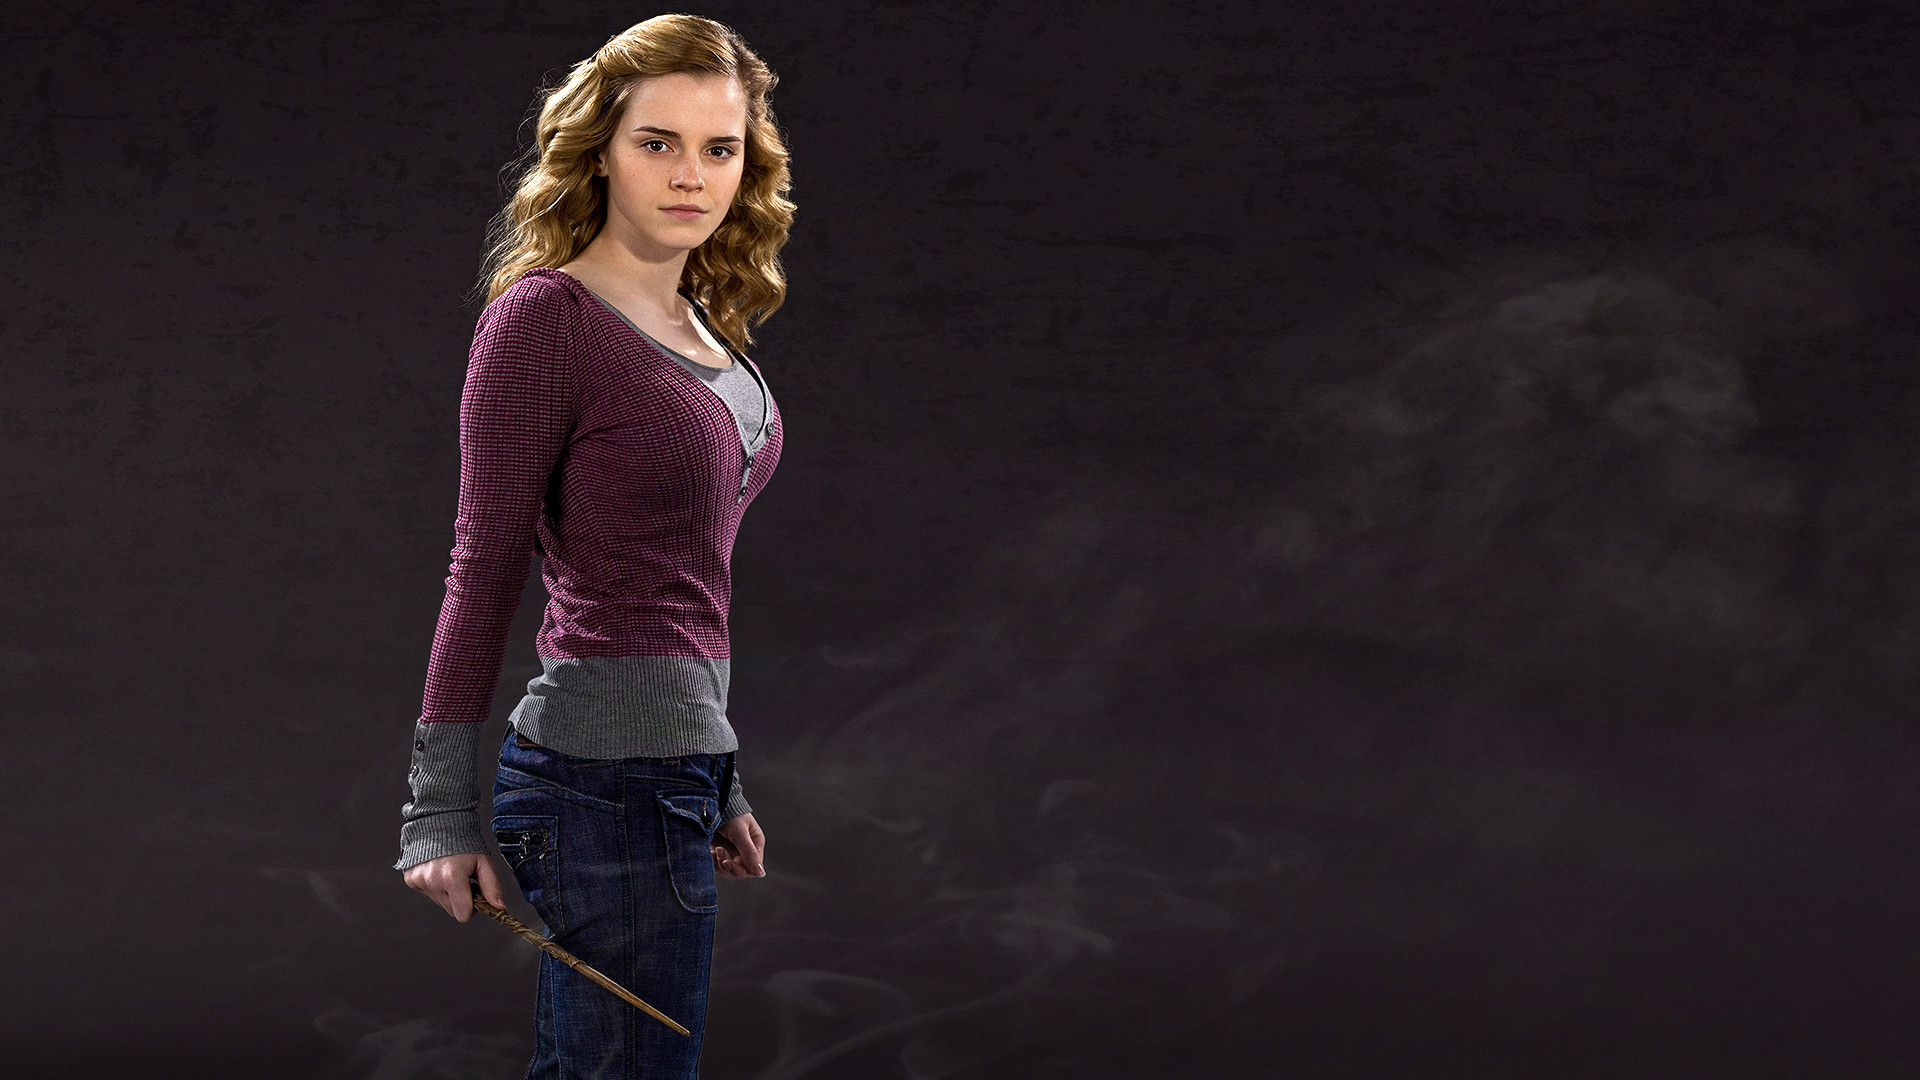 emma watson wallpapers (86+ background pictures)